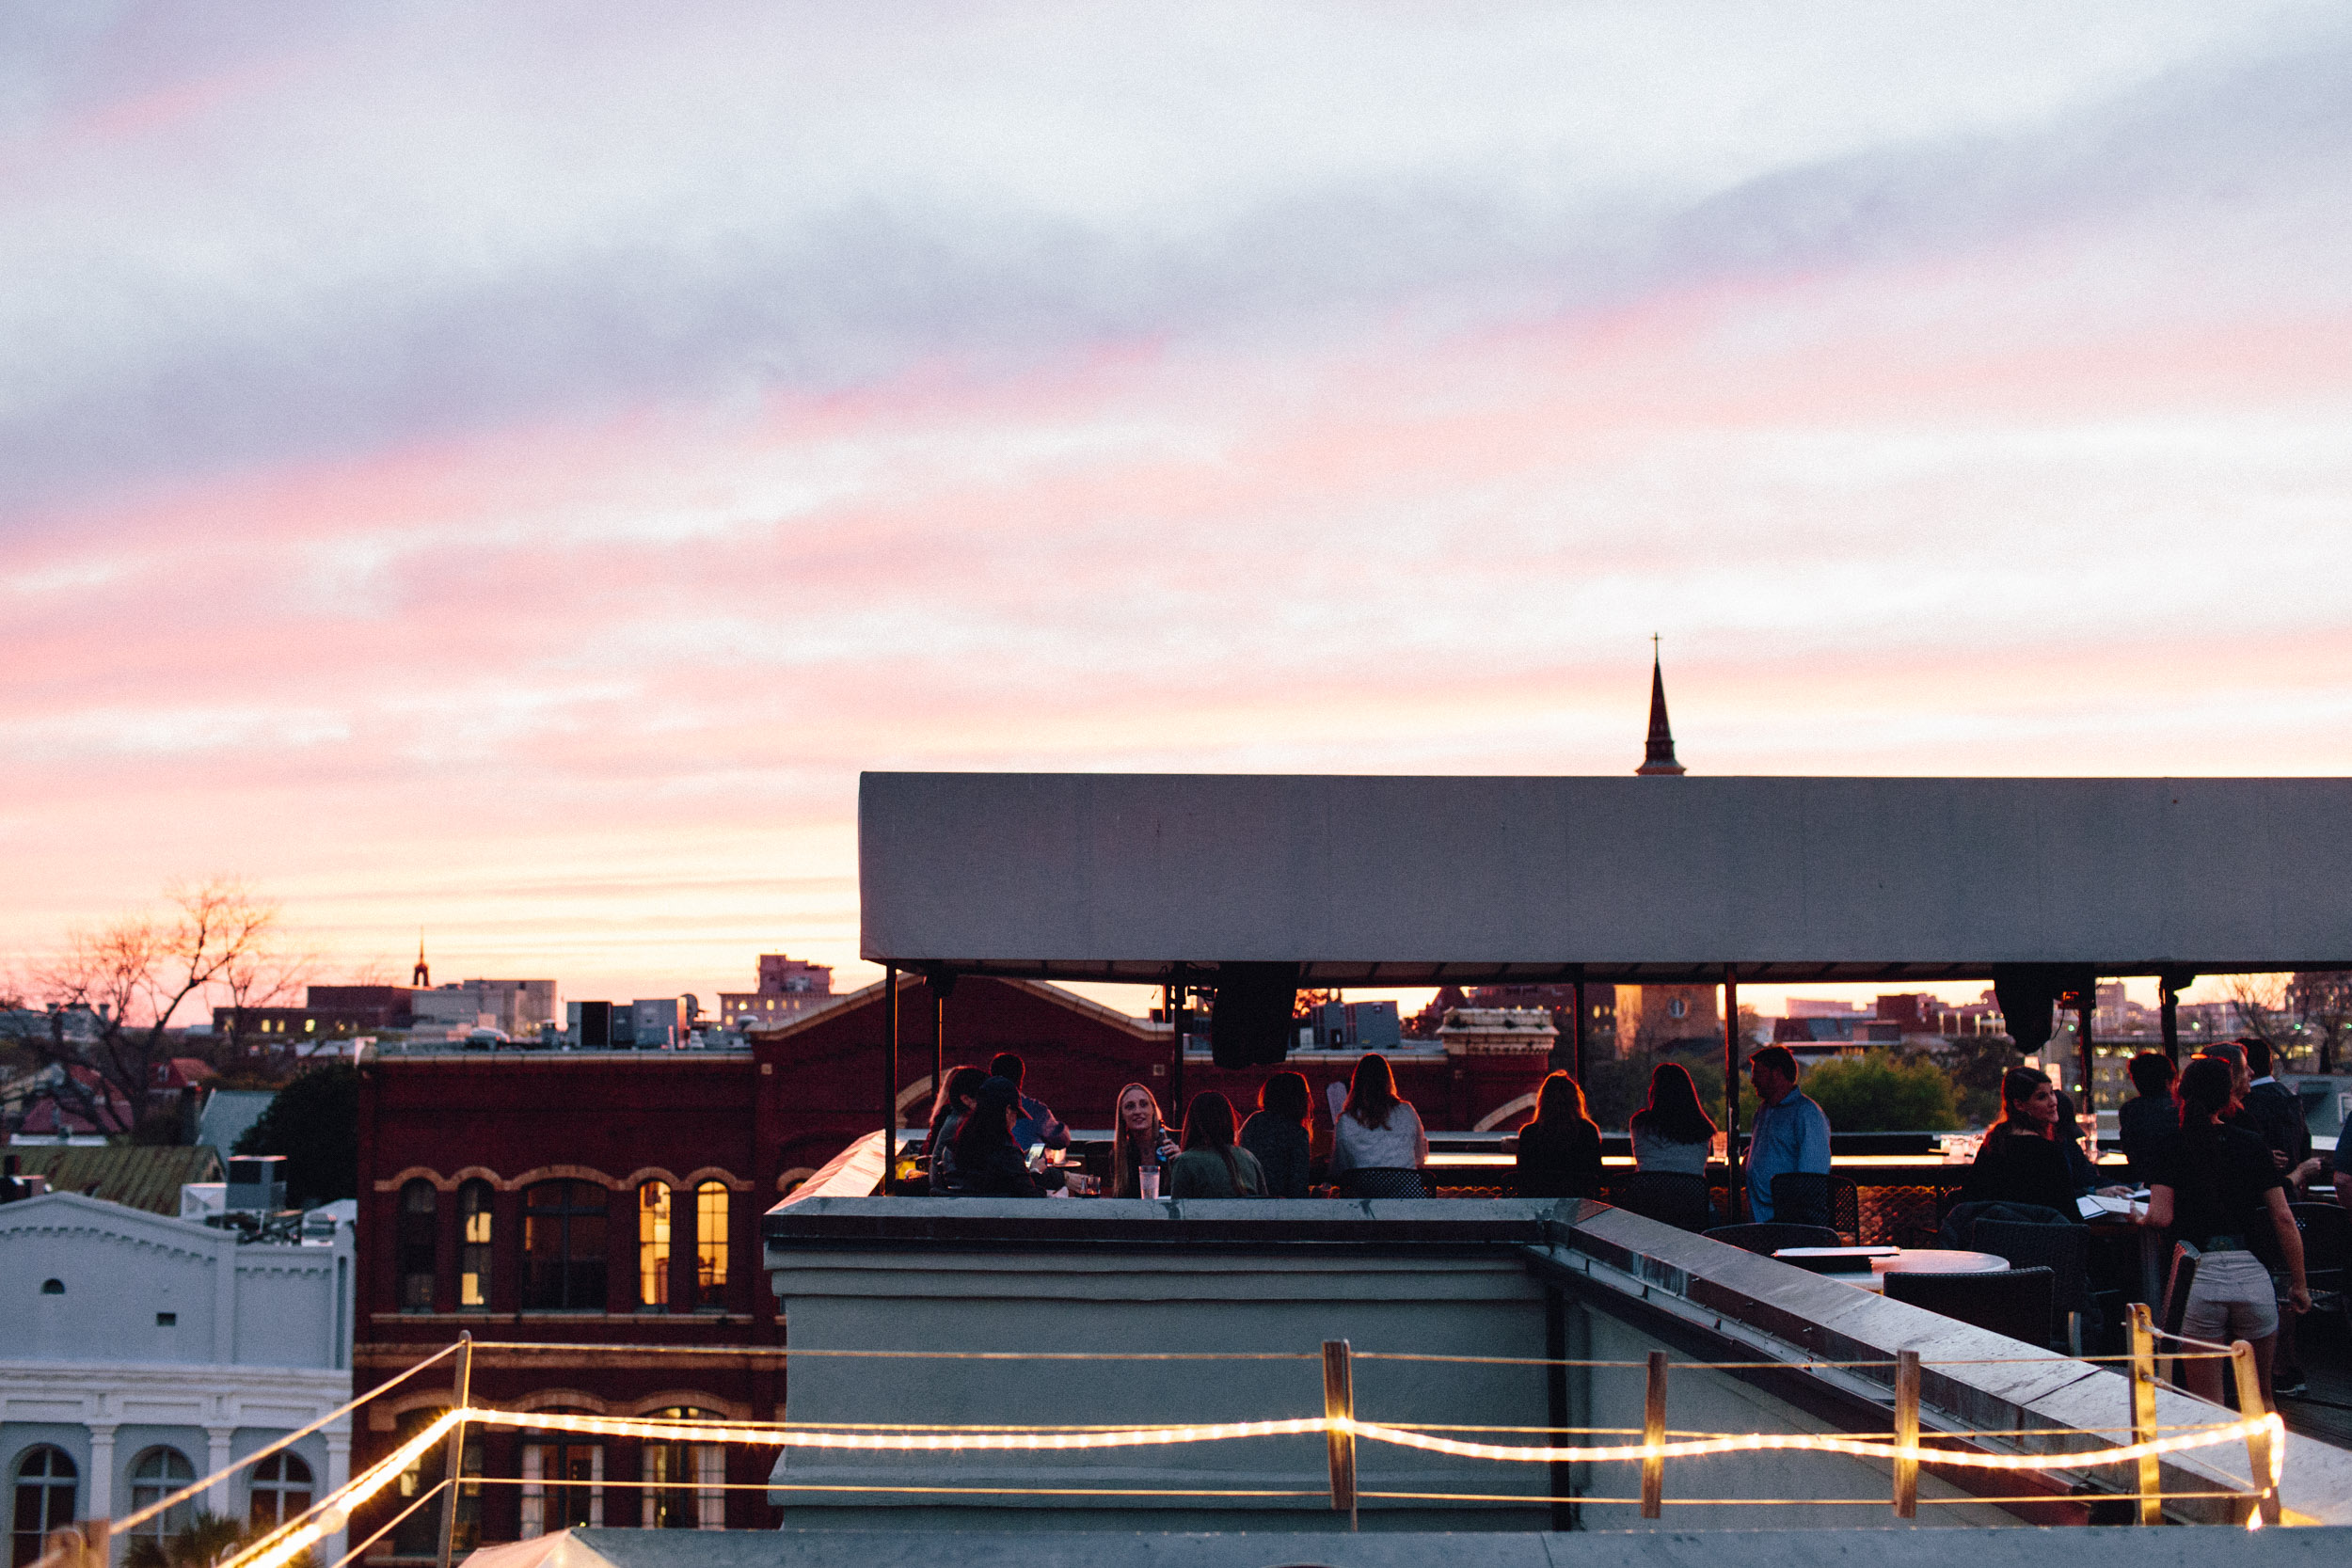 After the beautiful dinner at  The Drawing Room , we conveniently headed upstairs to  The Vendue's rooftop bar  for some cocktails, and more importantly, splendid Charleston sunset views. If you don't get on a rooftop at sunset in Charleston, you did something wrong. You GOTTA.